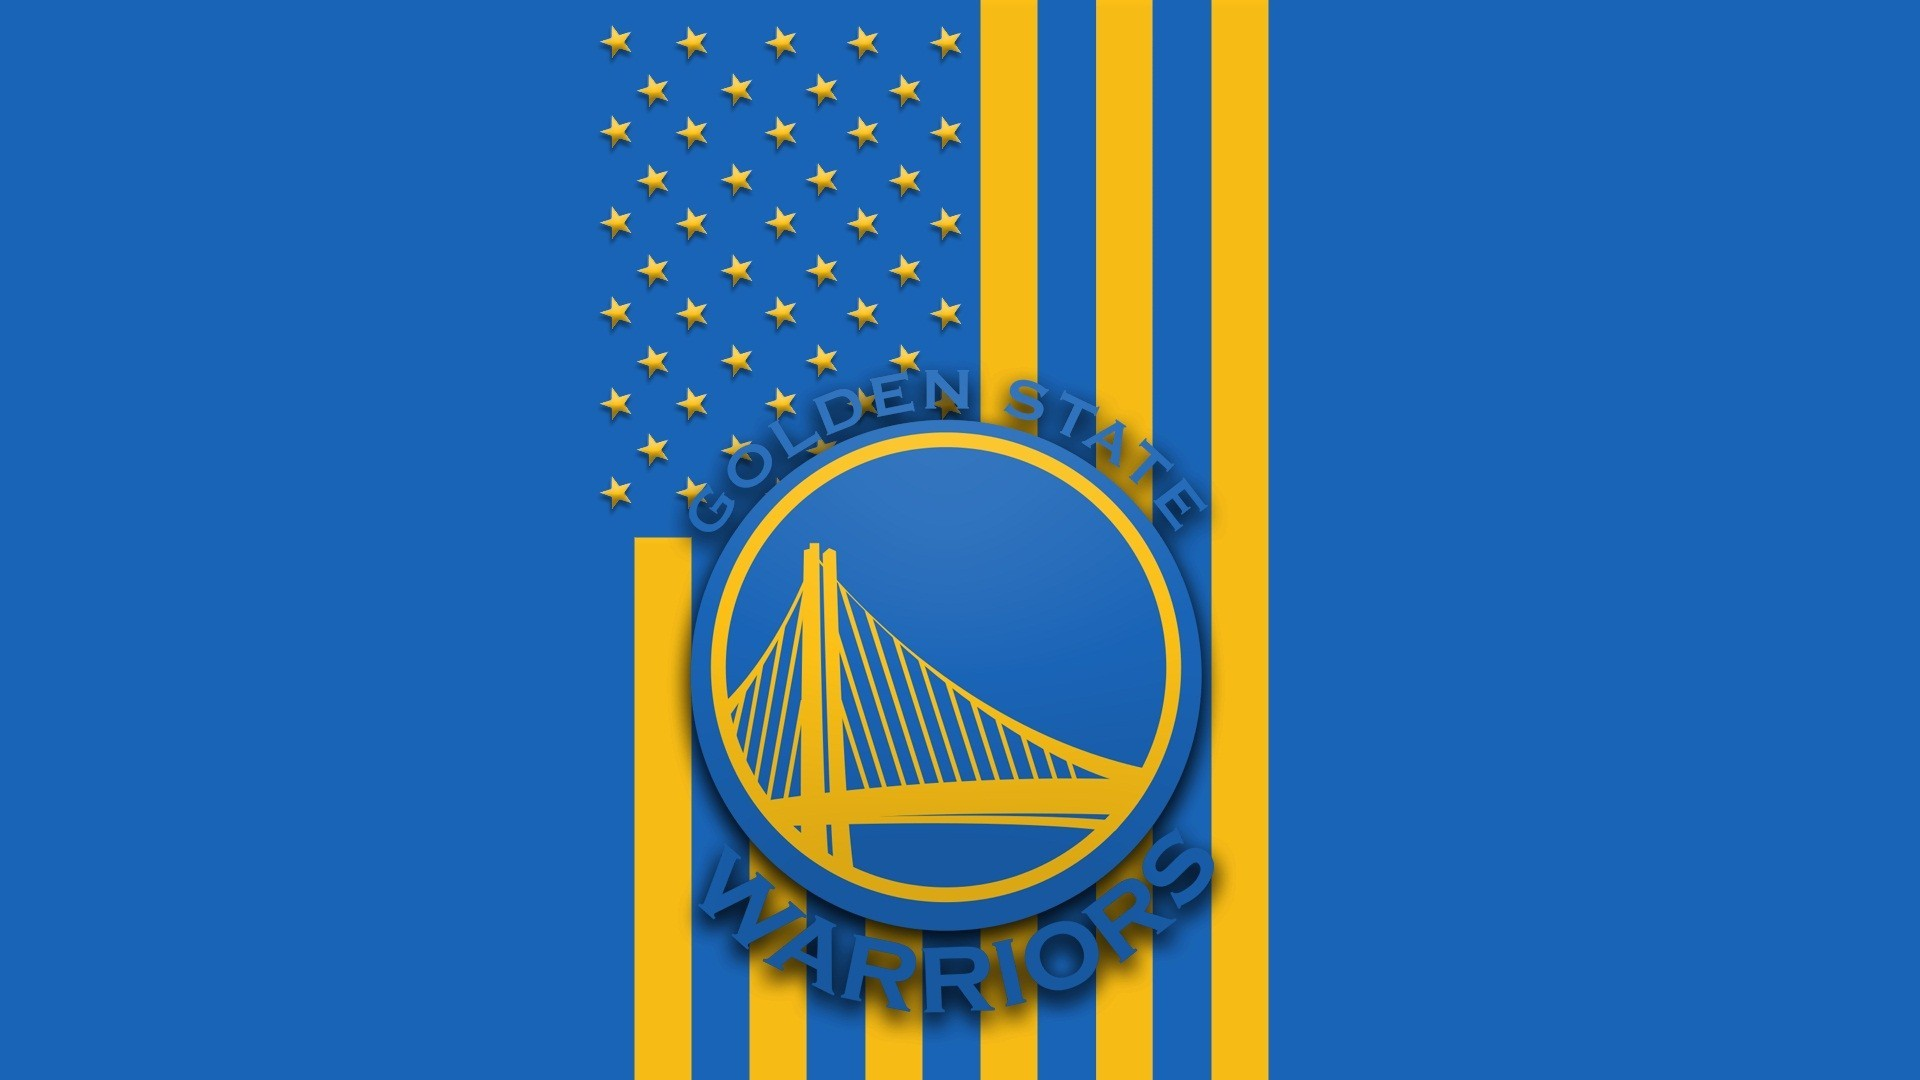 2800x1800 Stephen Curry Golden State Warriors Wallpaper For Iphone